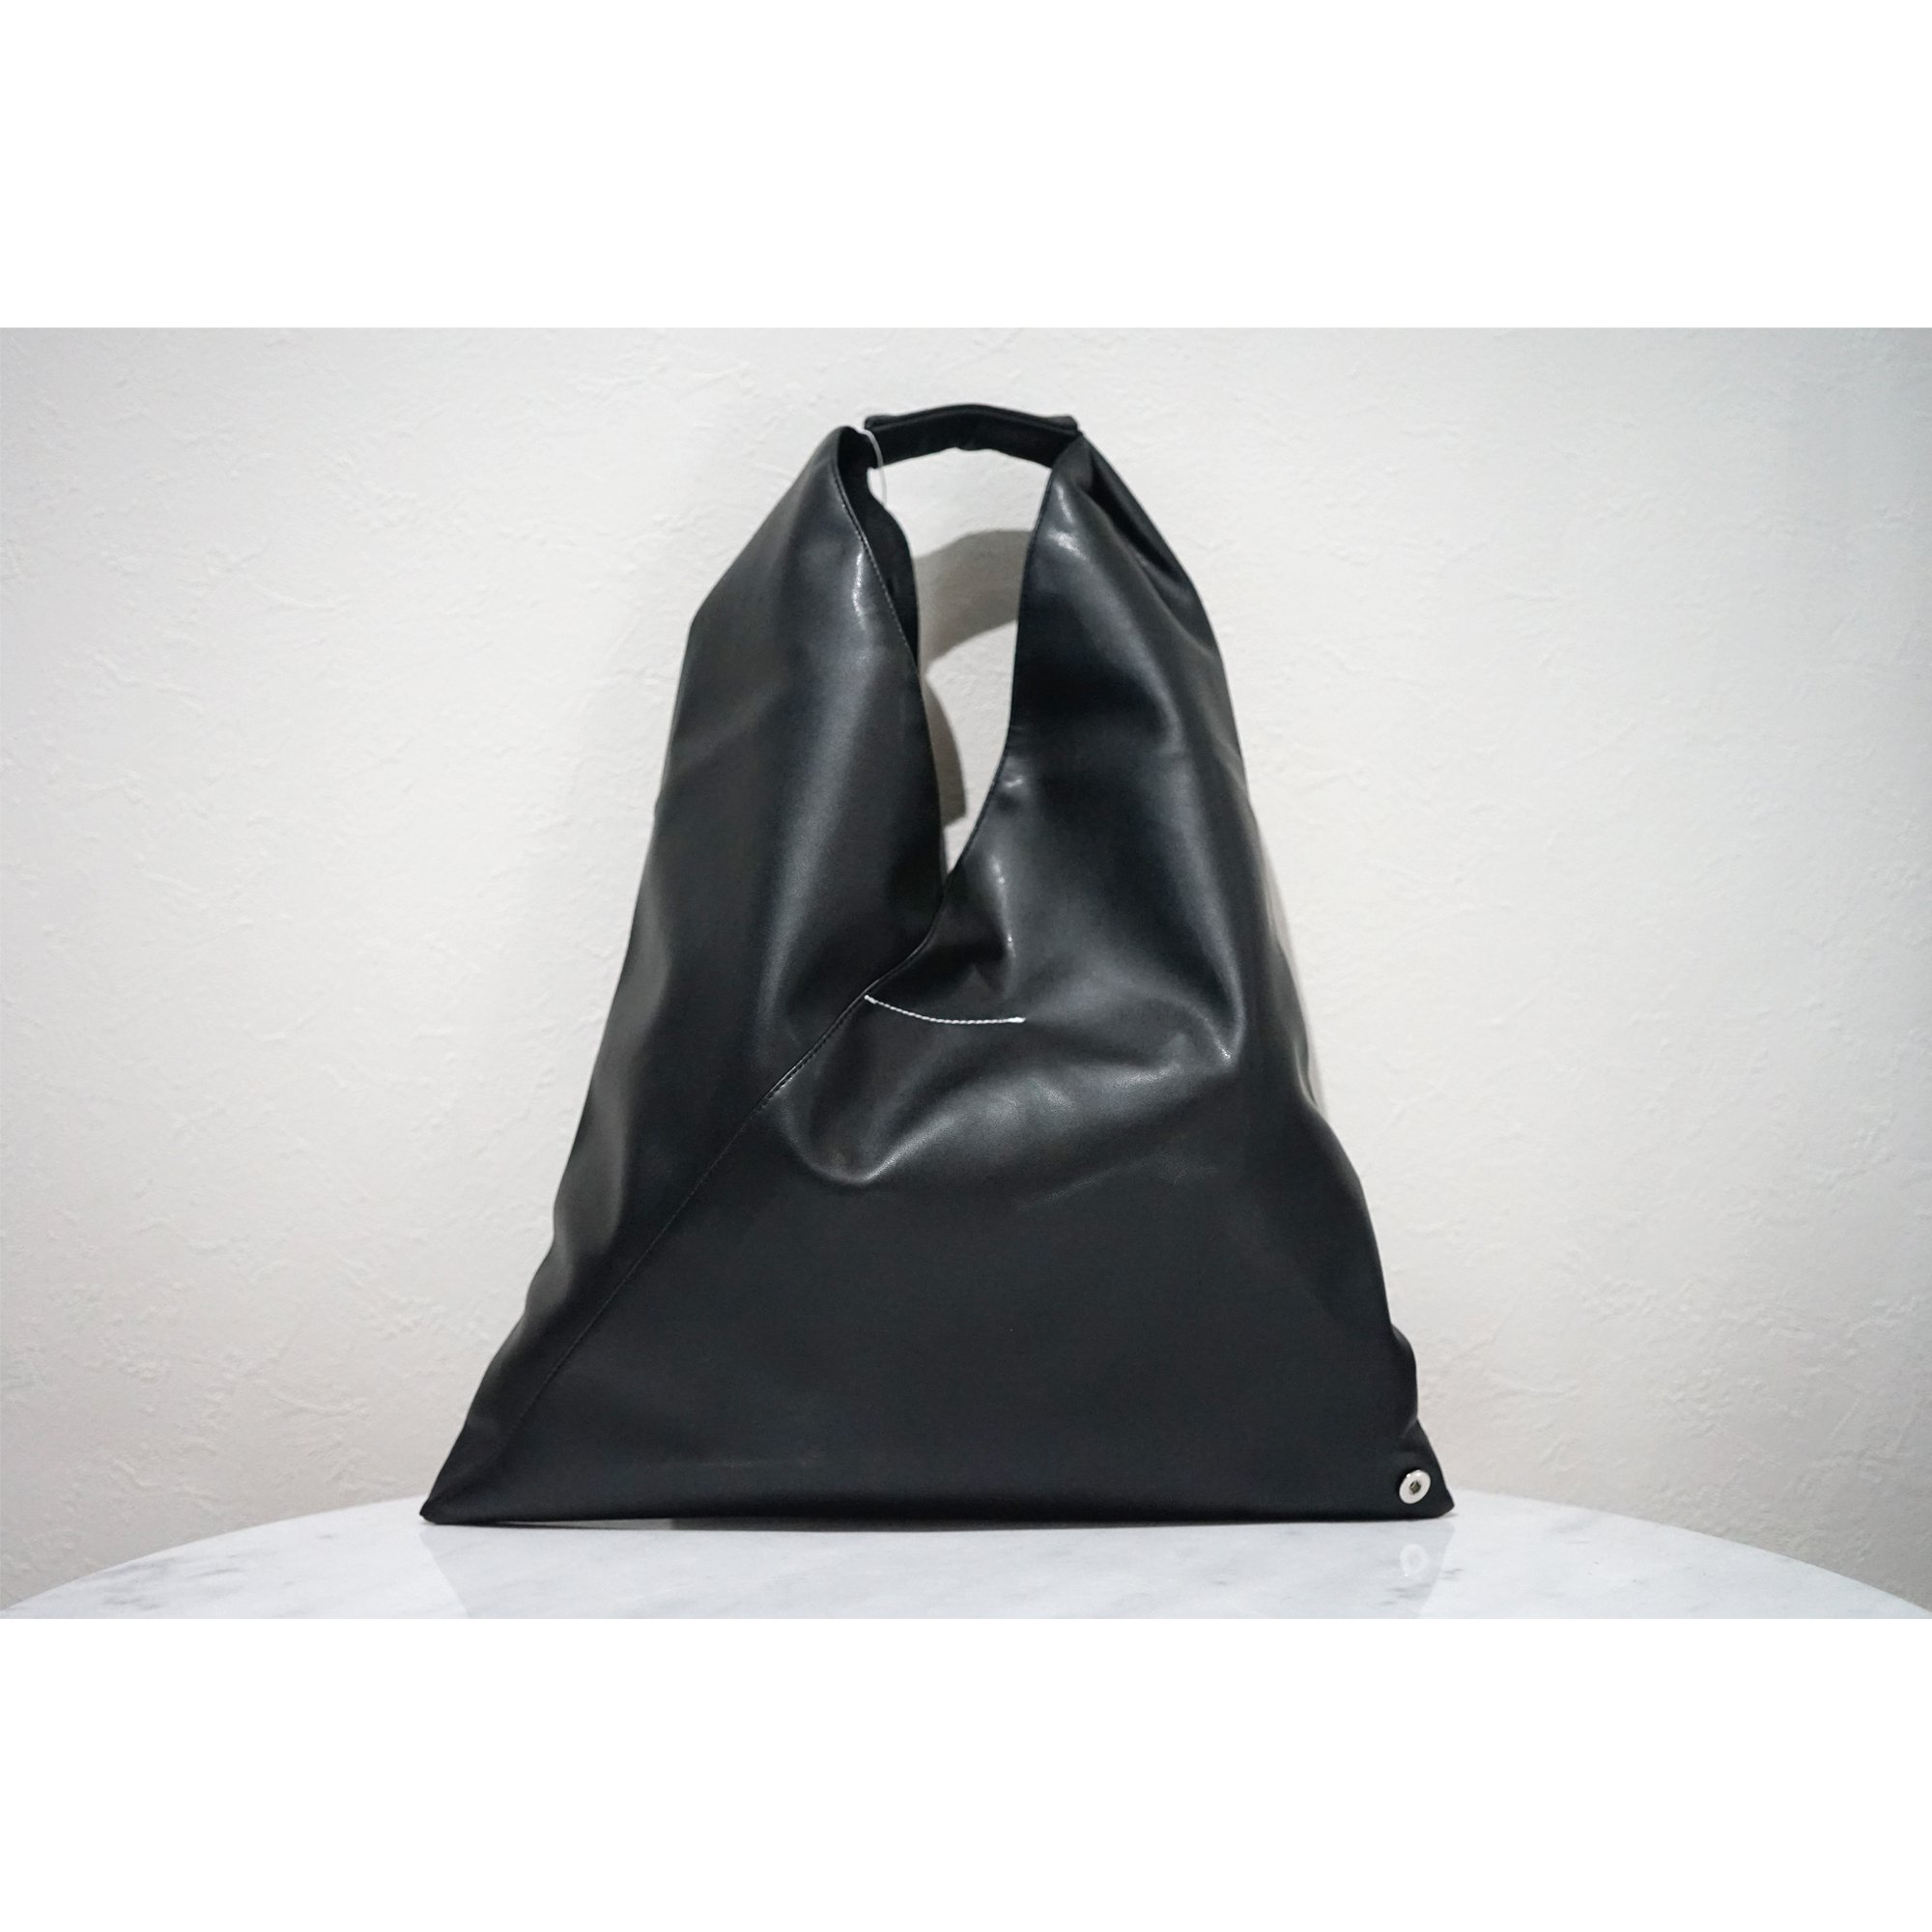 MM6-JAPANESE BAG COW LEATHER SMALL SIZE BLACK (在庫なし)